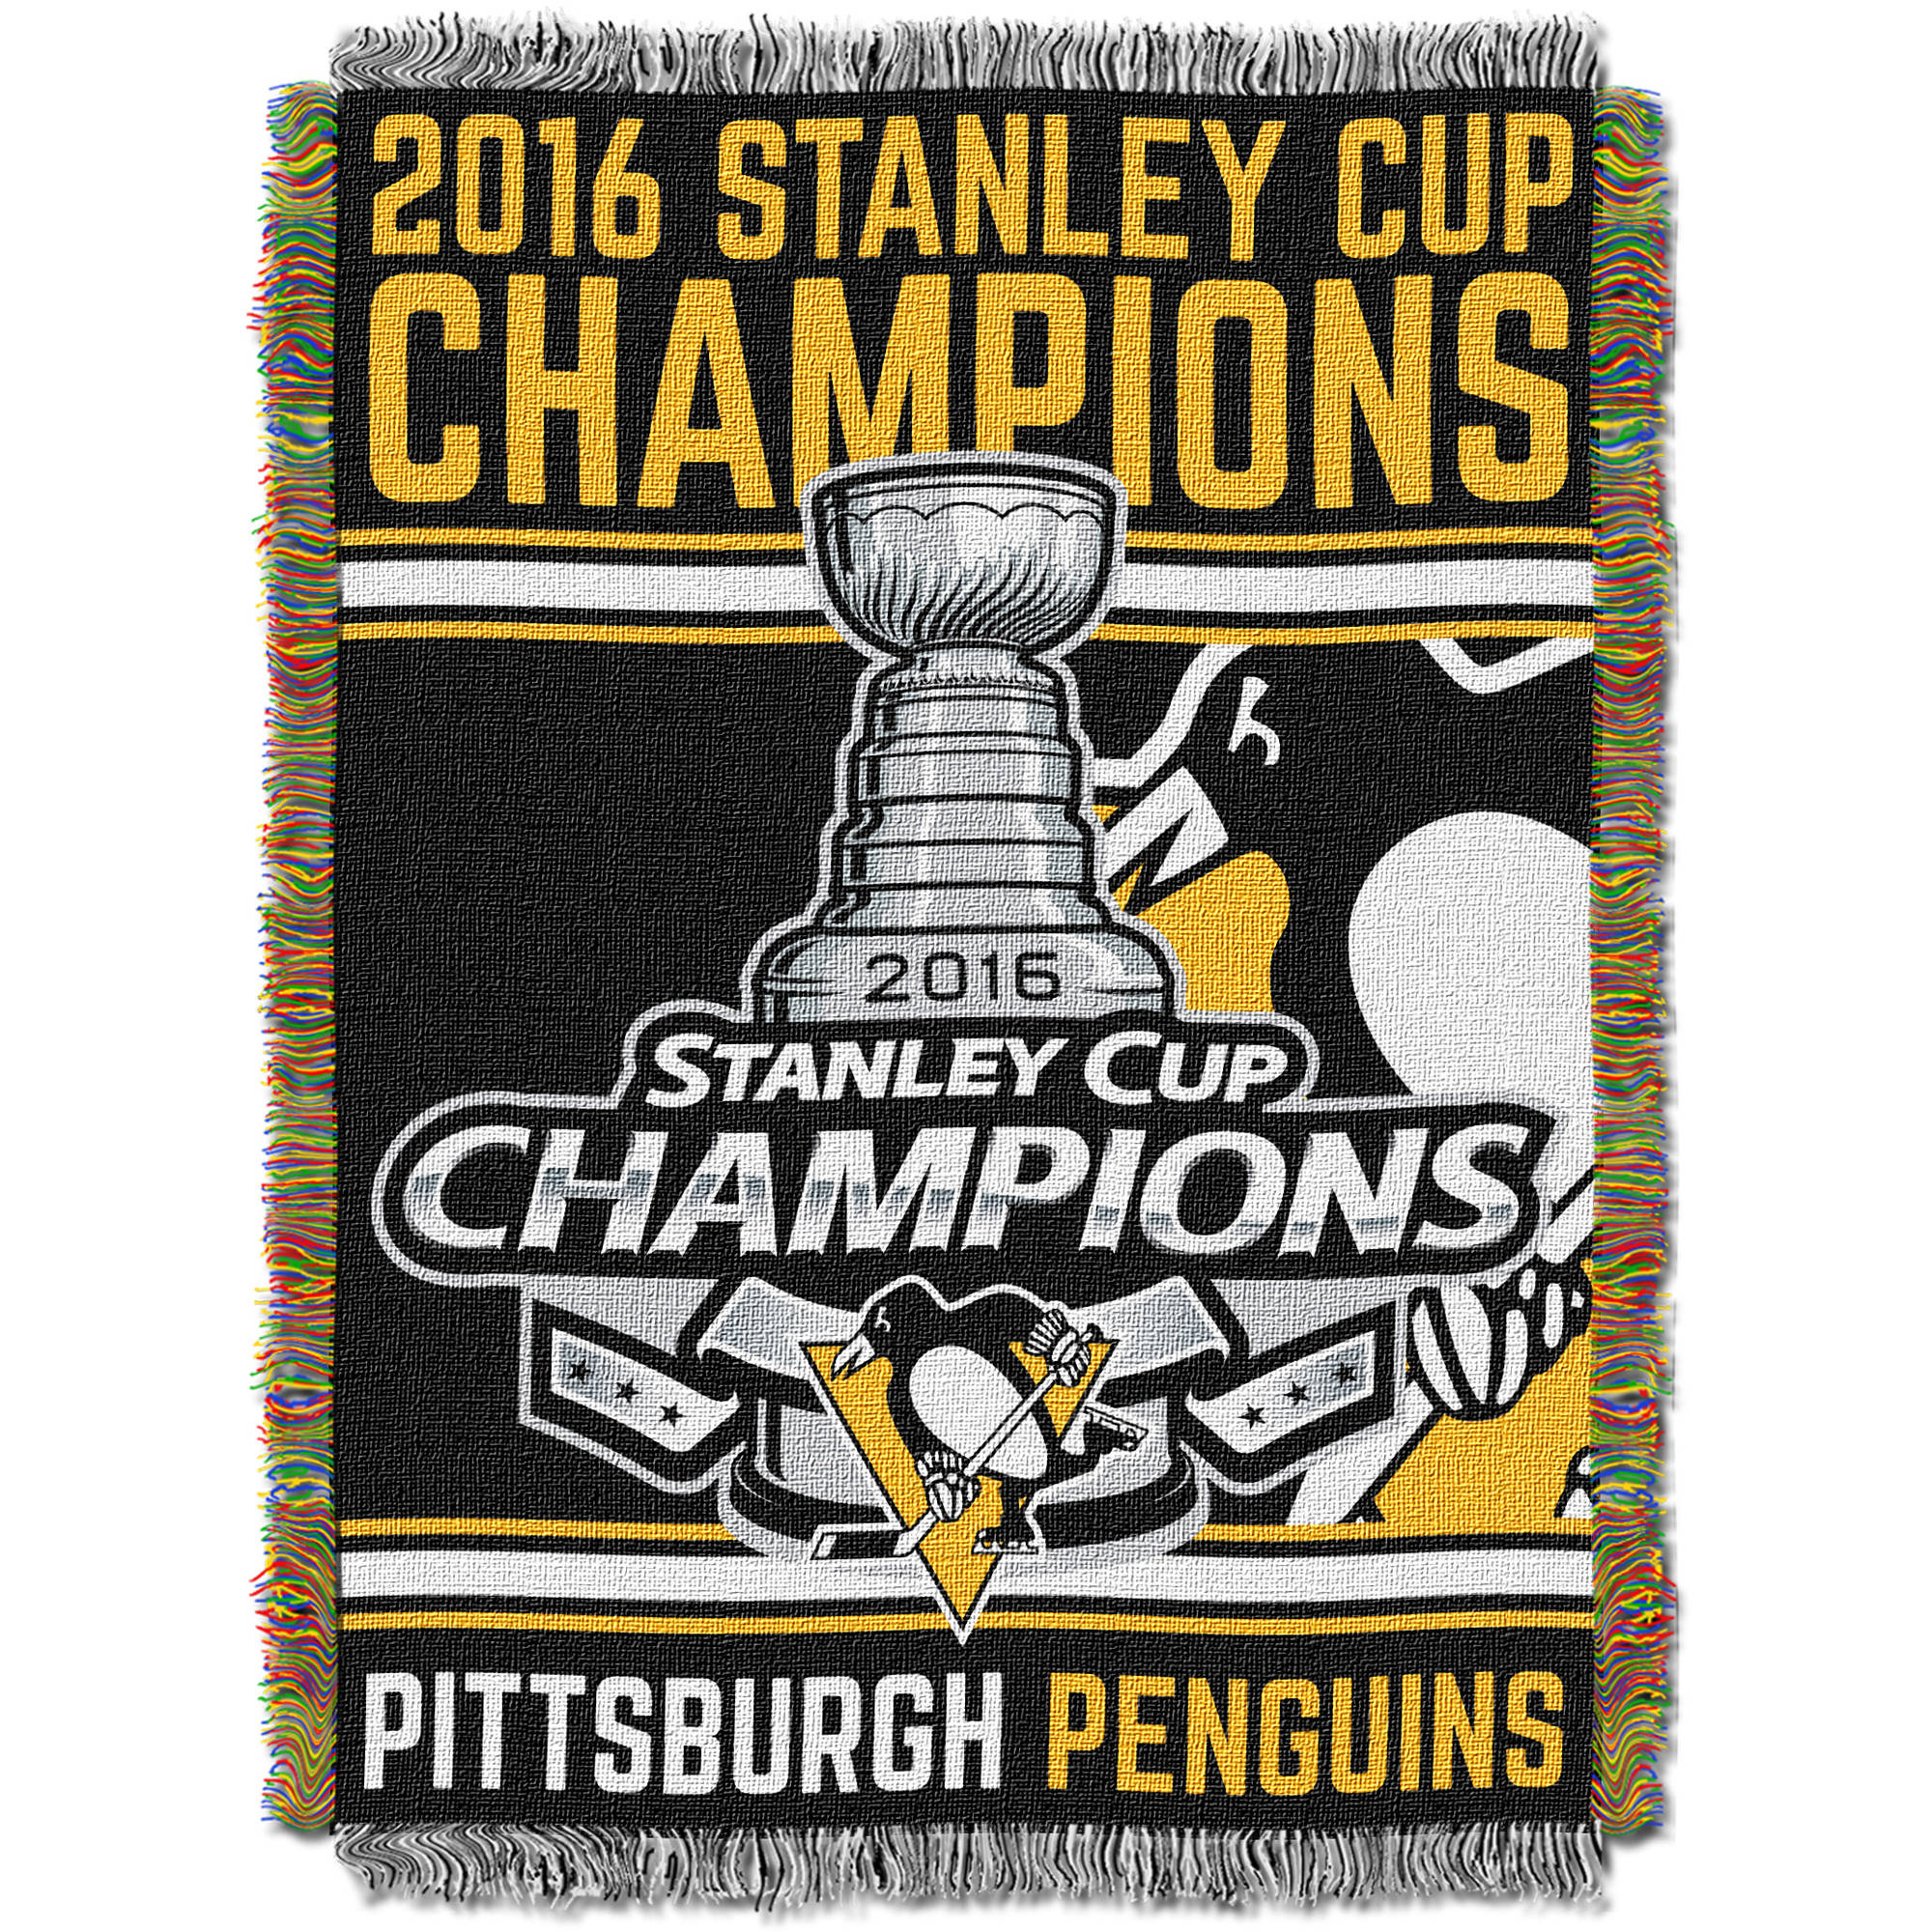 NHL Pittsburgh Penguins 2016 Stanley Cup Champions Tapestry Throw 196940